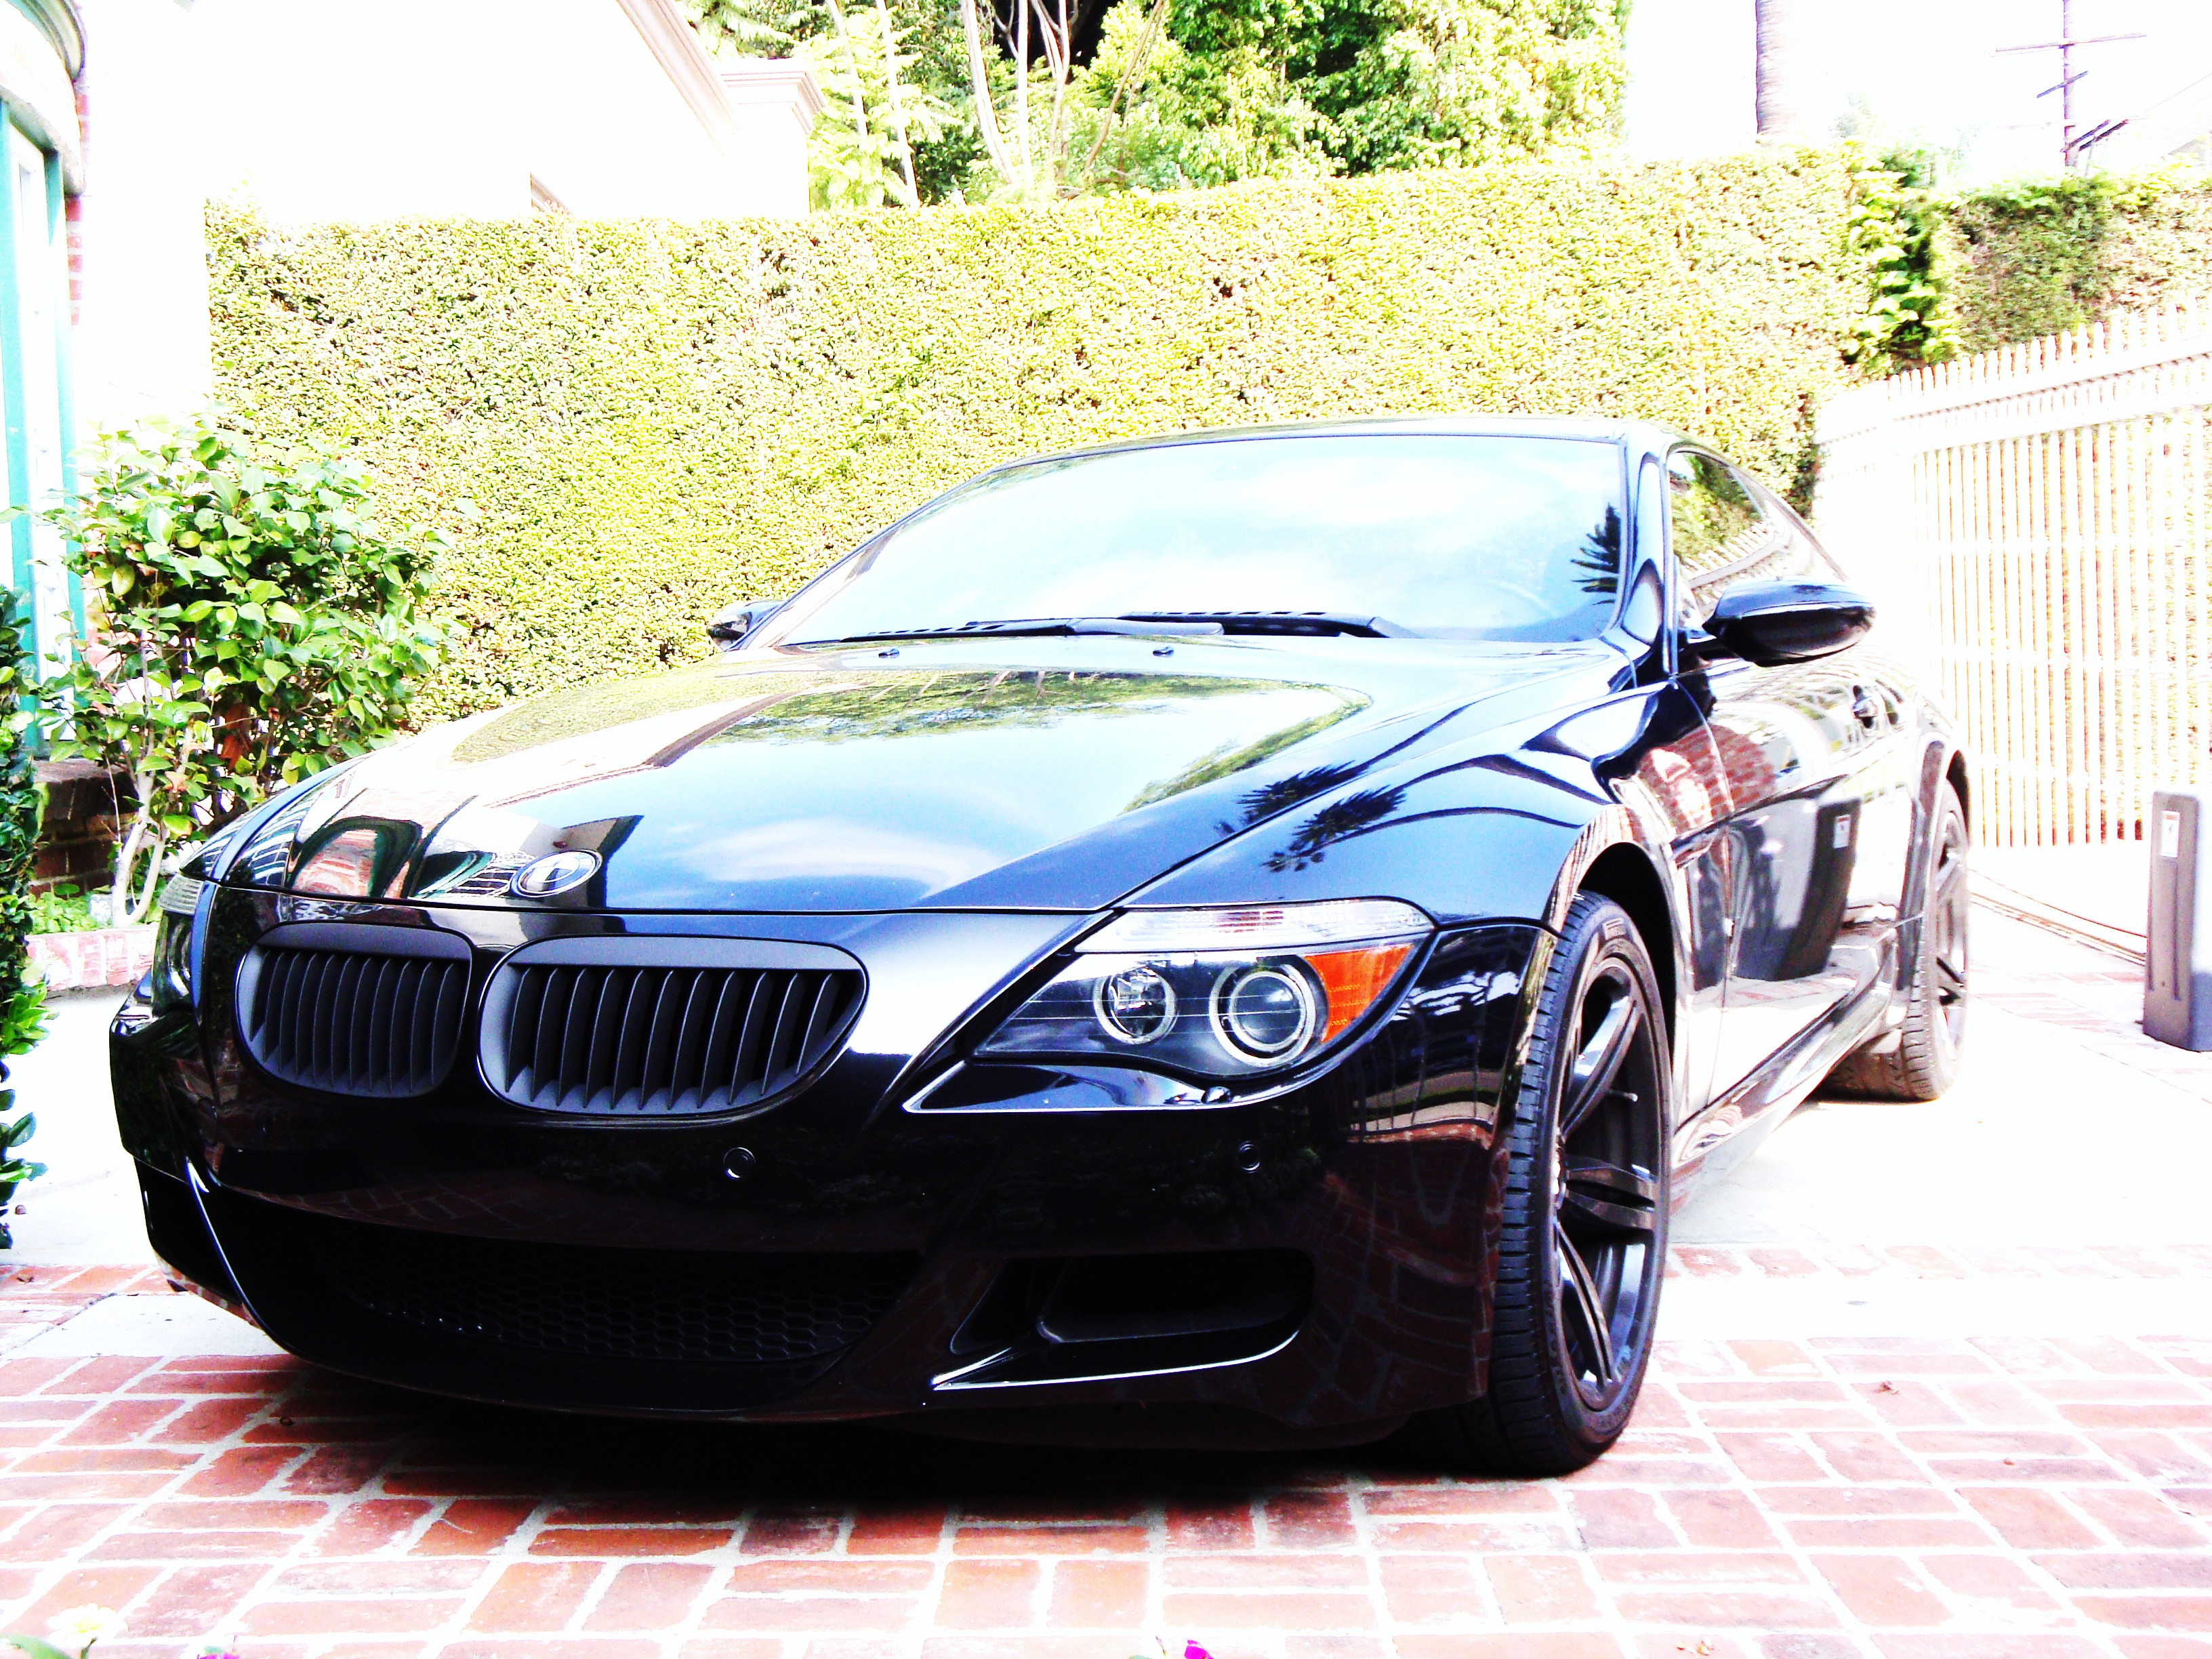 E63 0310 For Sale 2006 BMW M6 Black For Sale Must Go Really